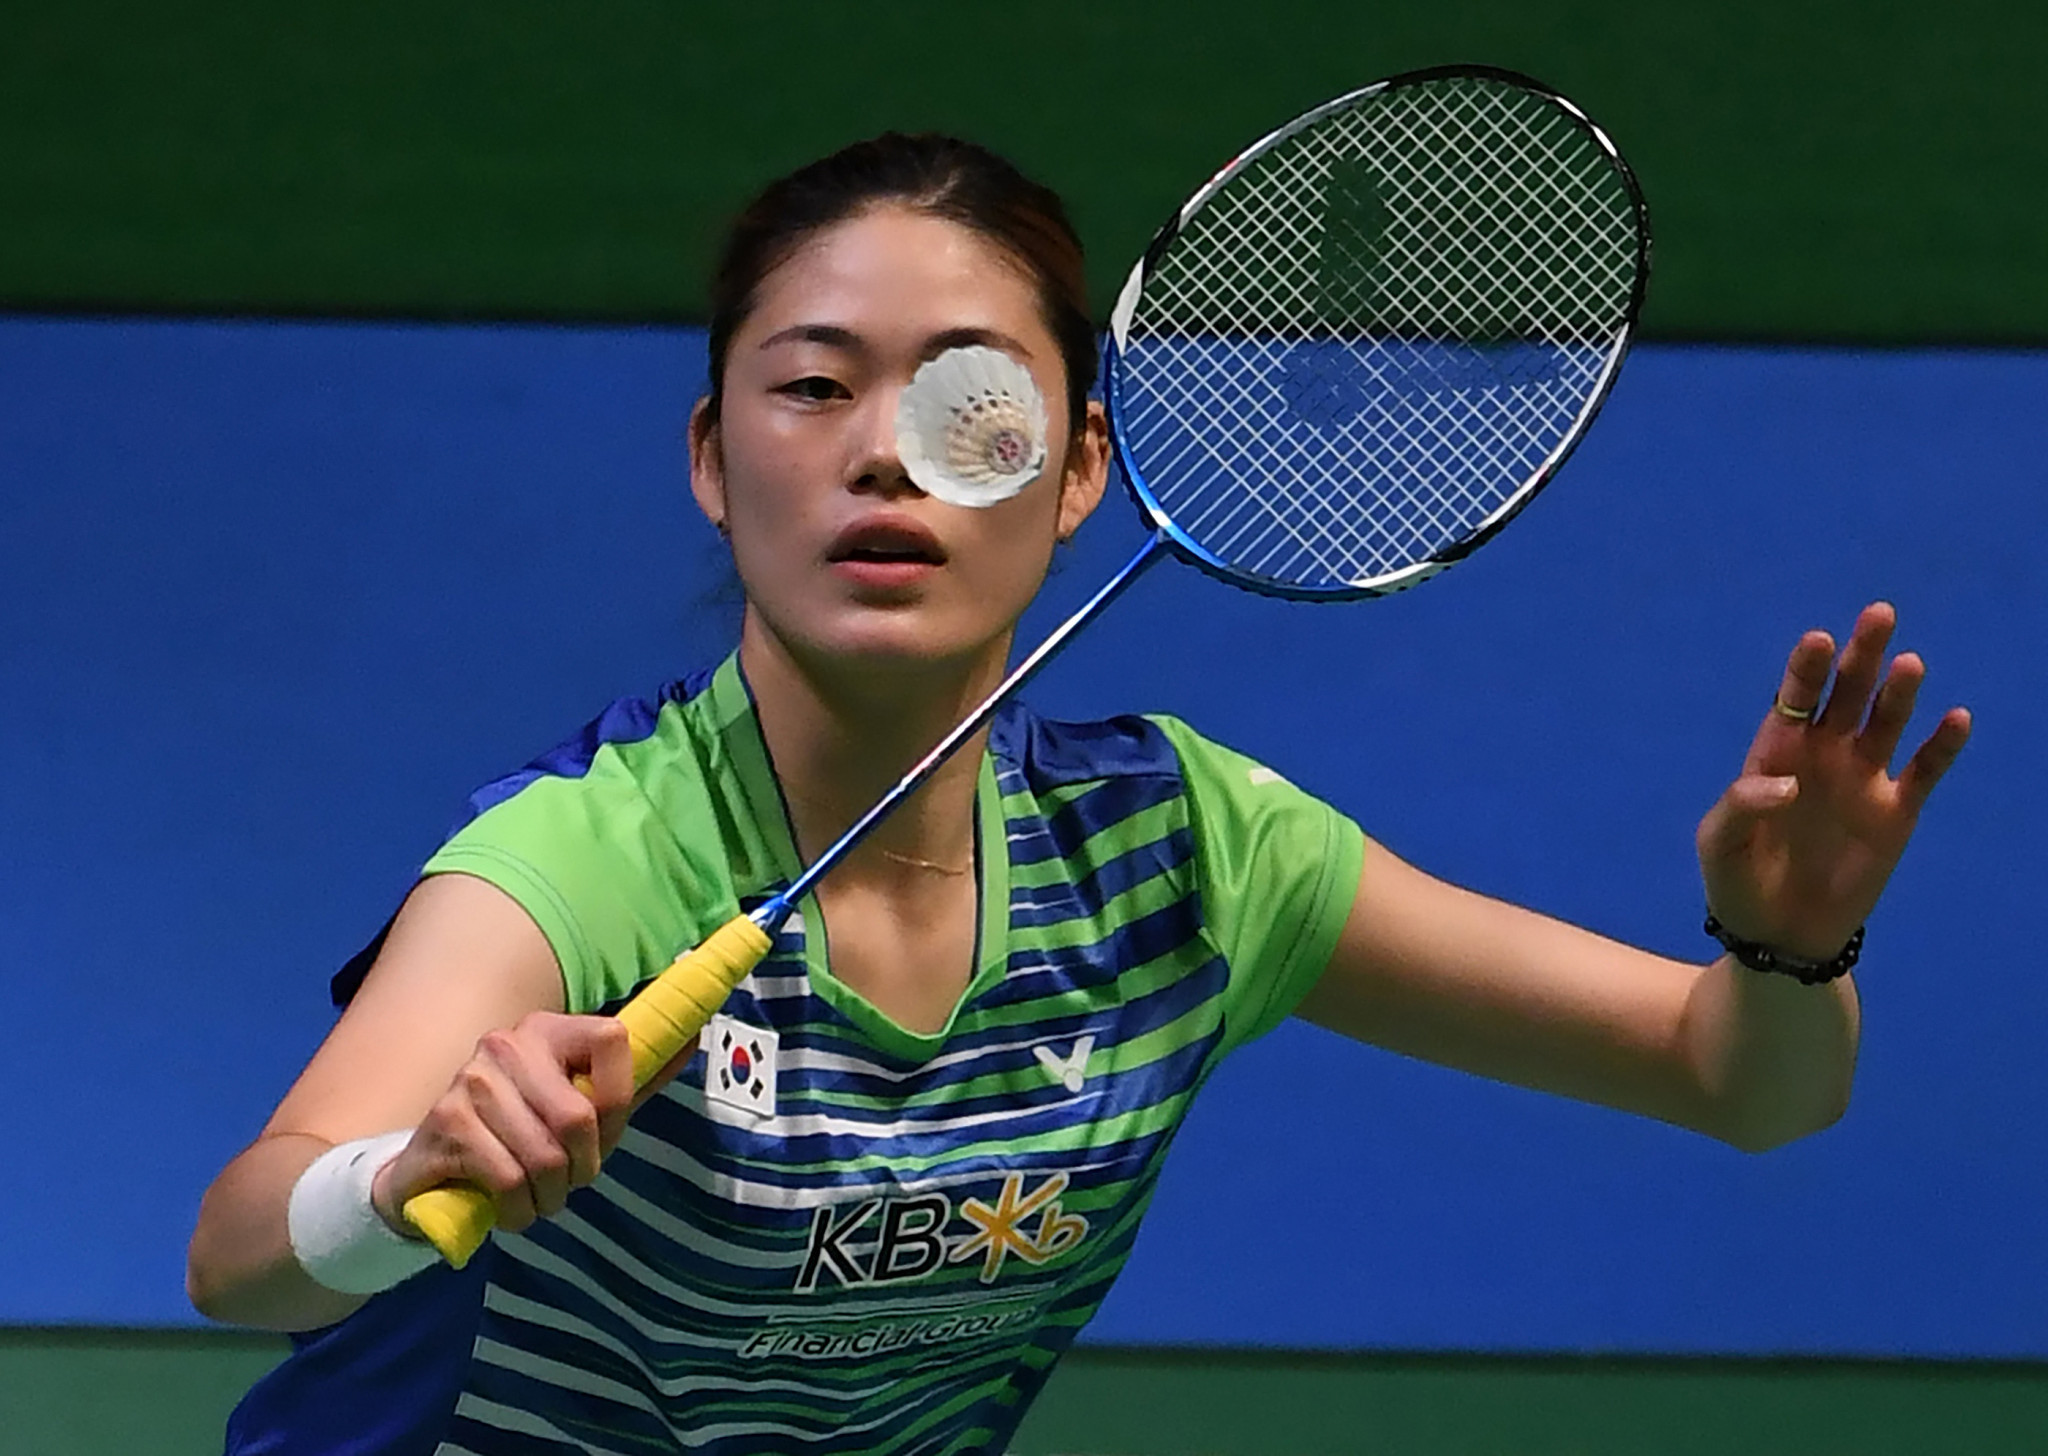 Upsets galore on day two of Yonex Canada Open